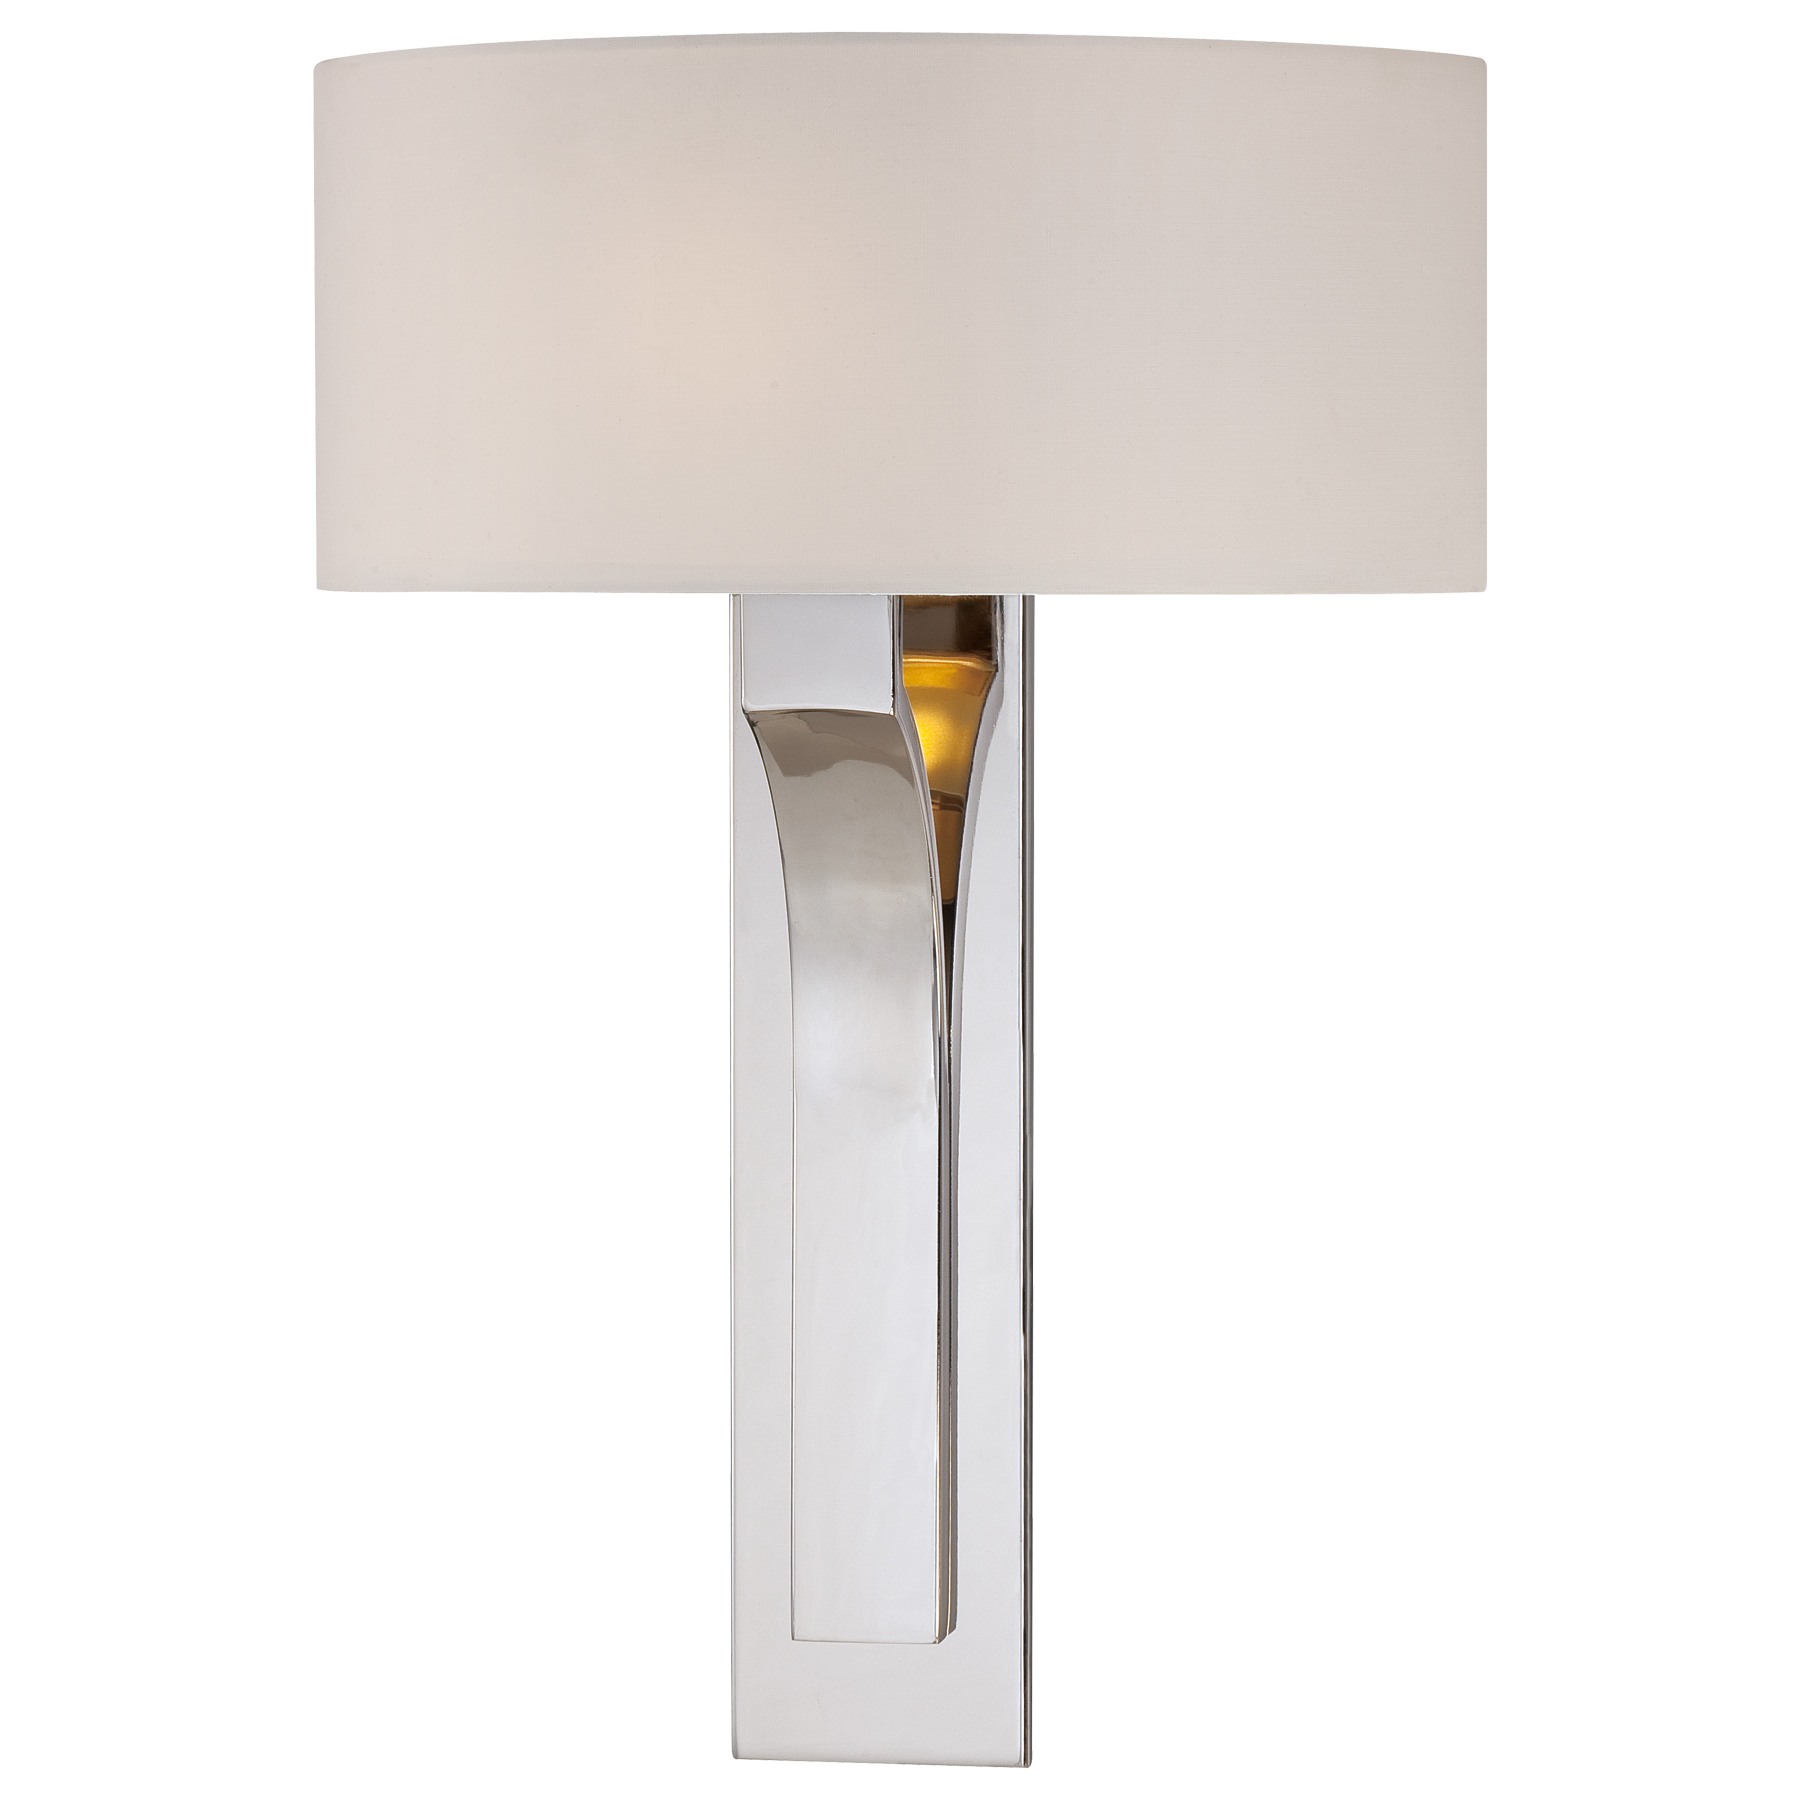 p wall sconce by george kovacs  p. wall sconce by george kovacs  p